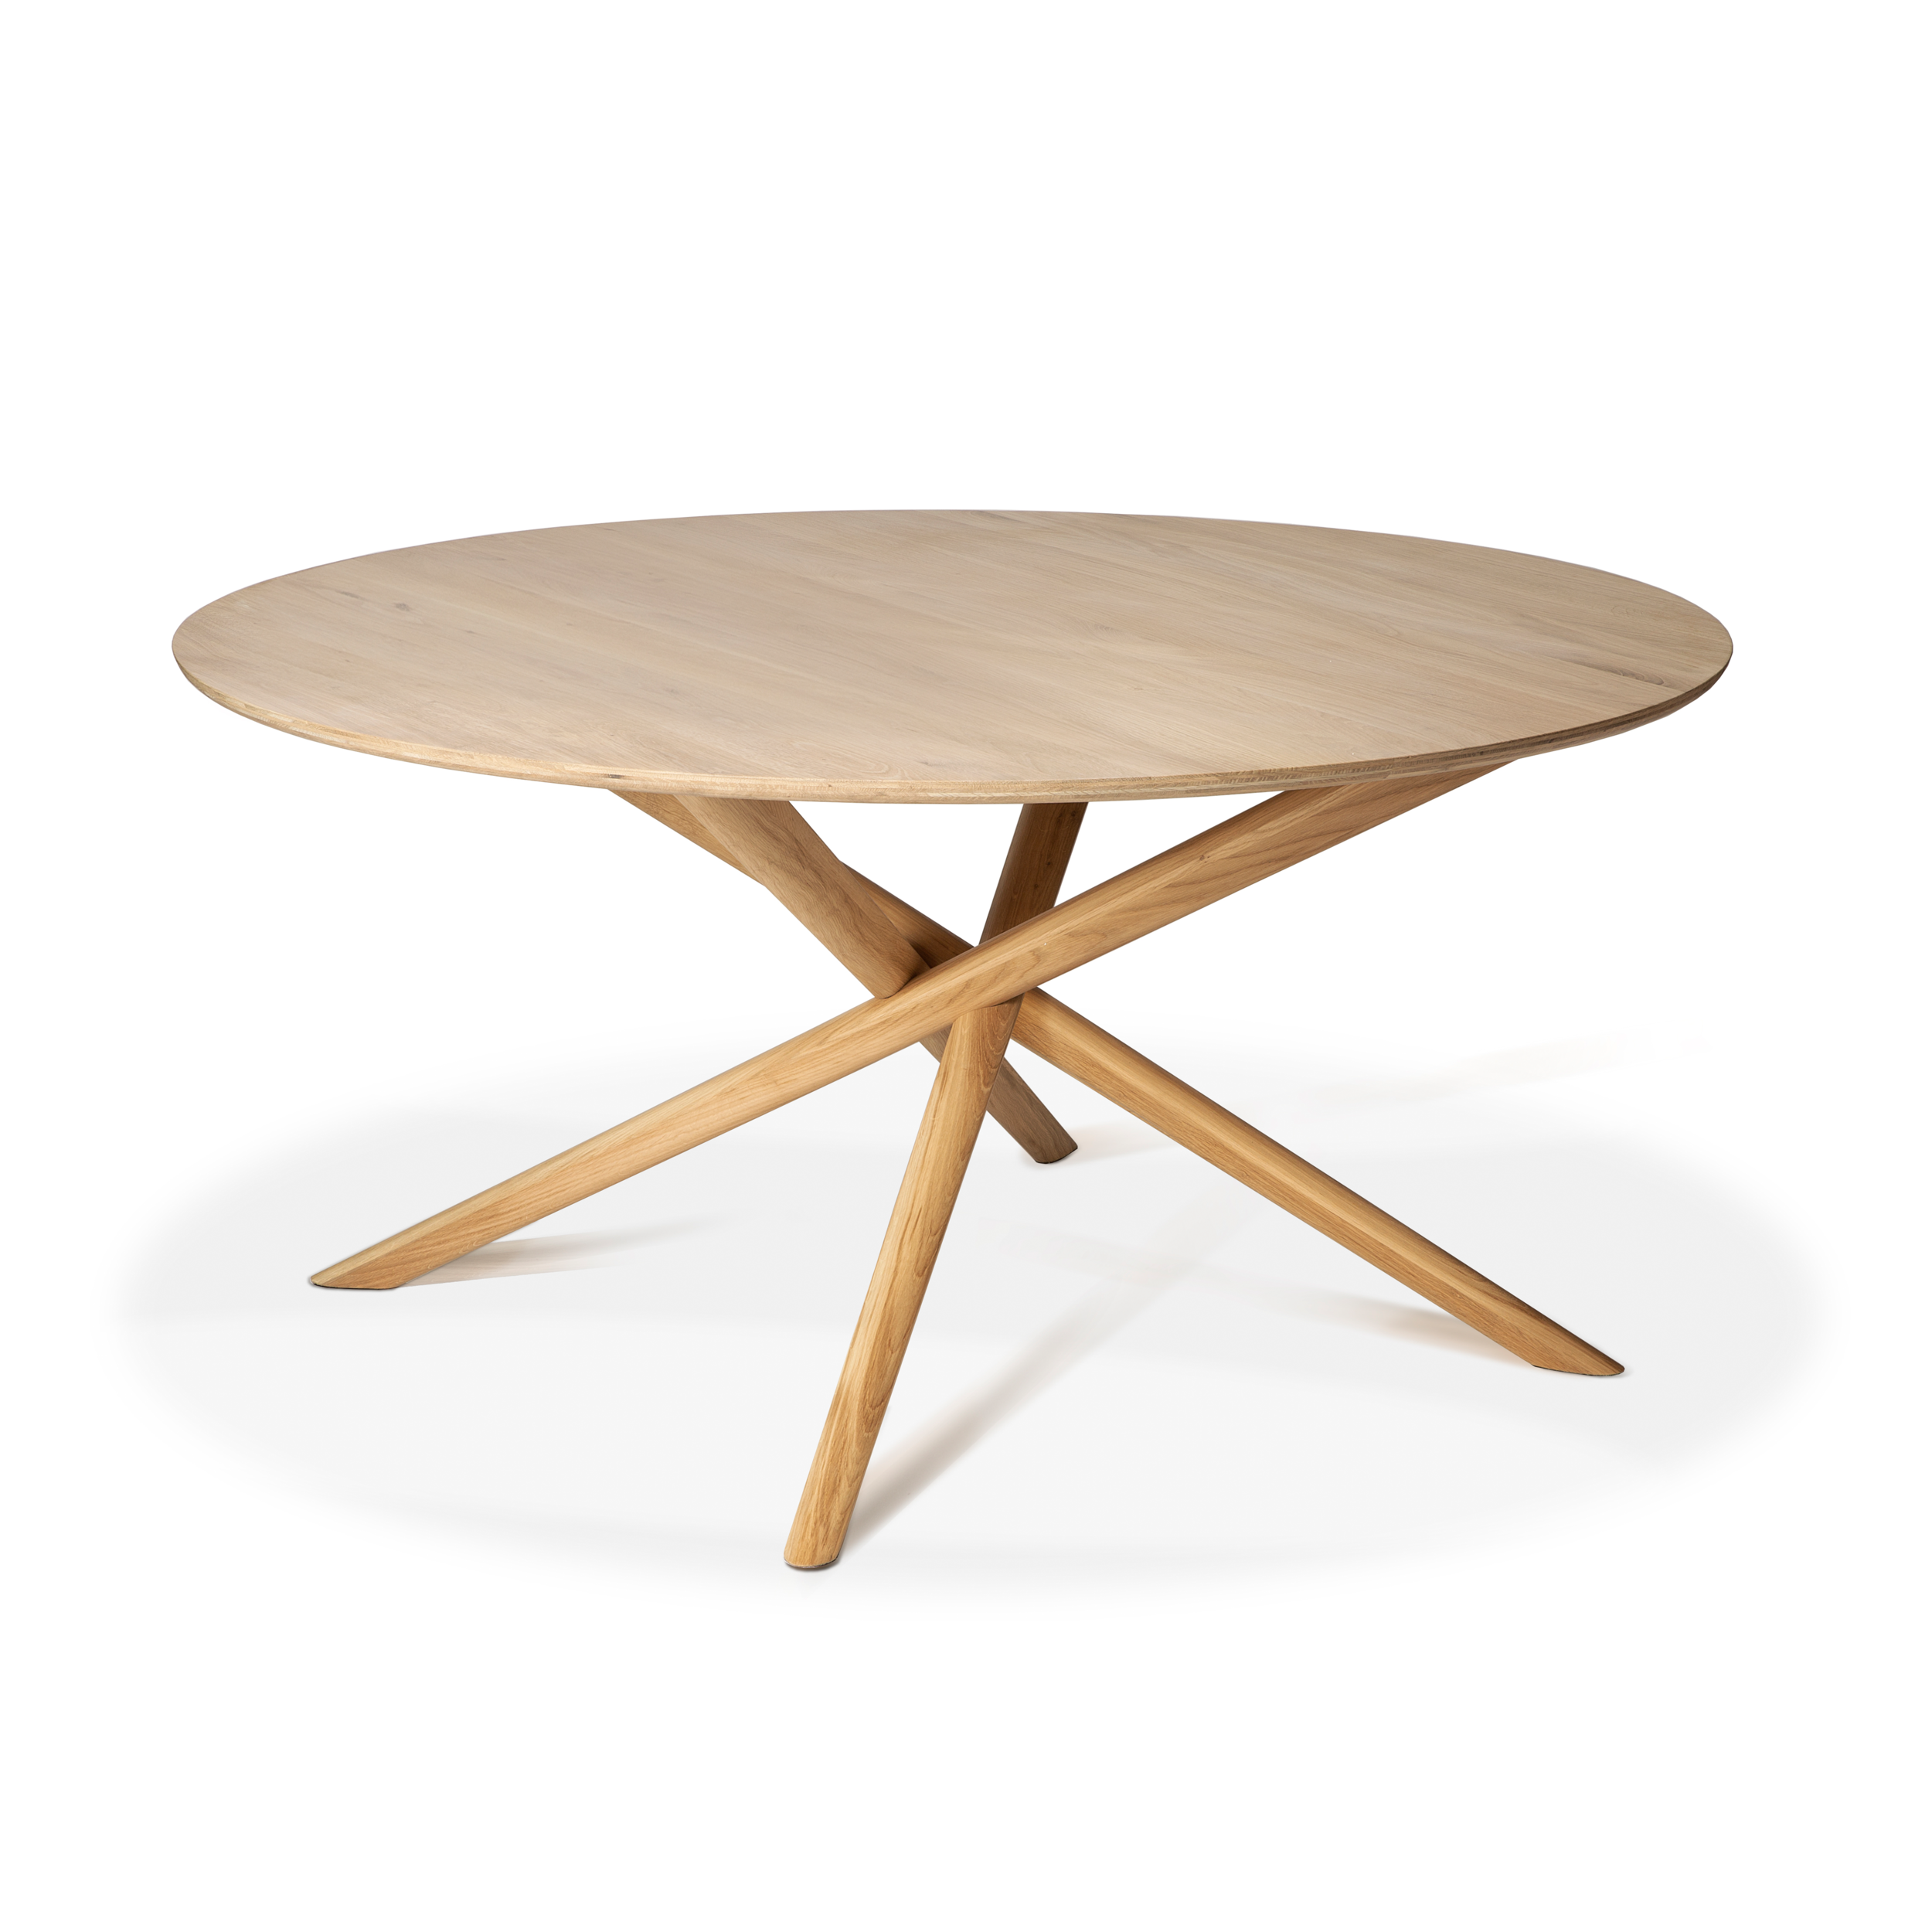 50545 Oak Mikado round dining table (1) (1).jpg.png